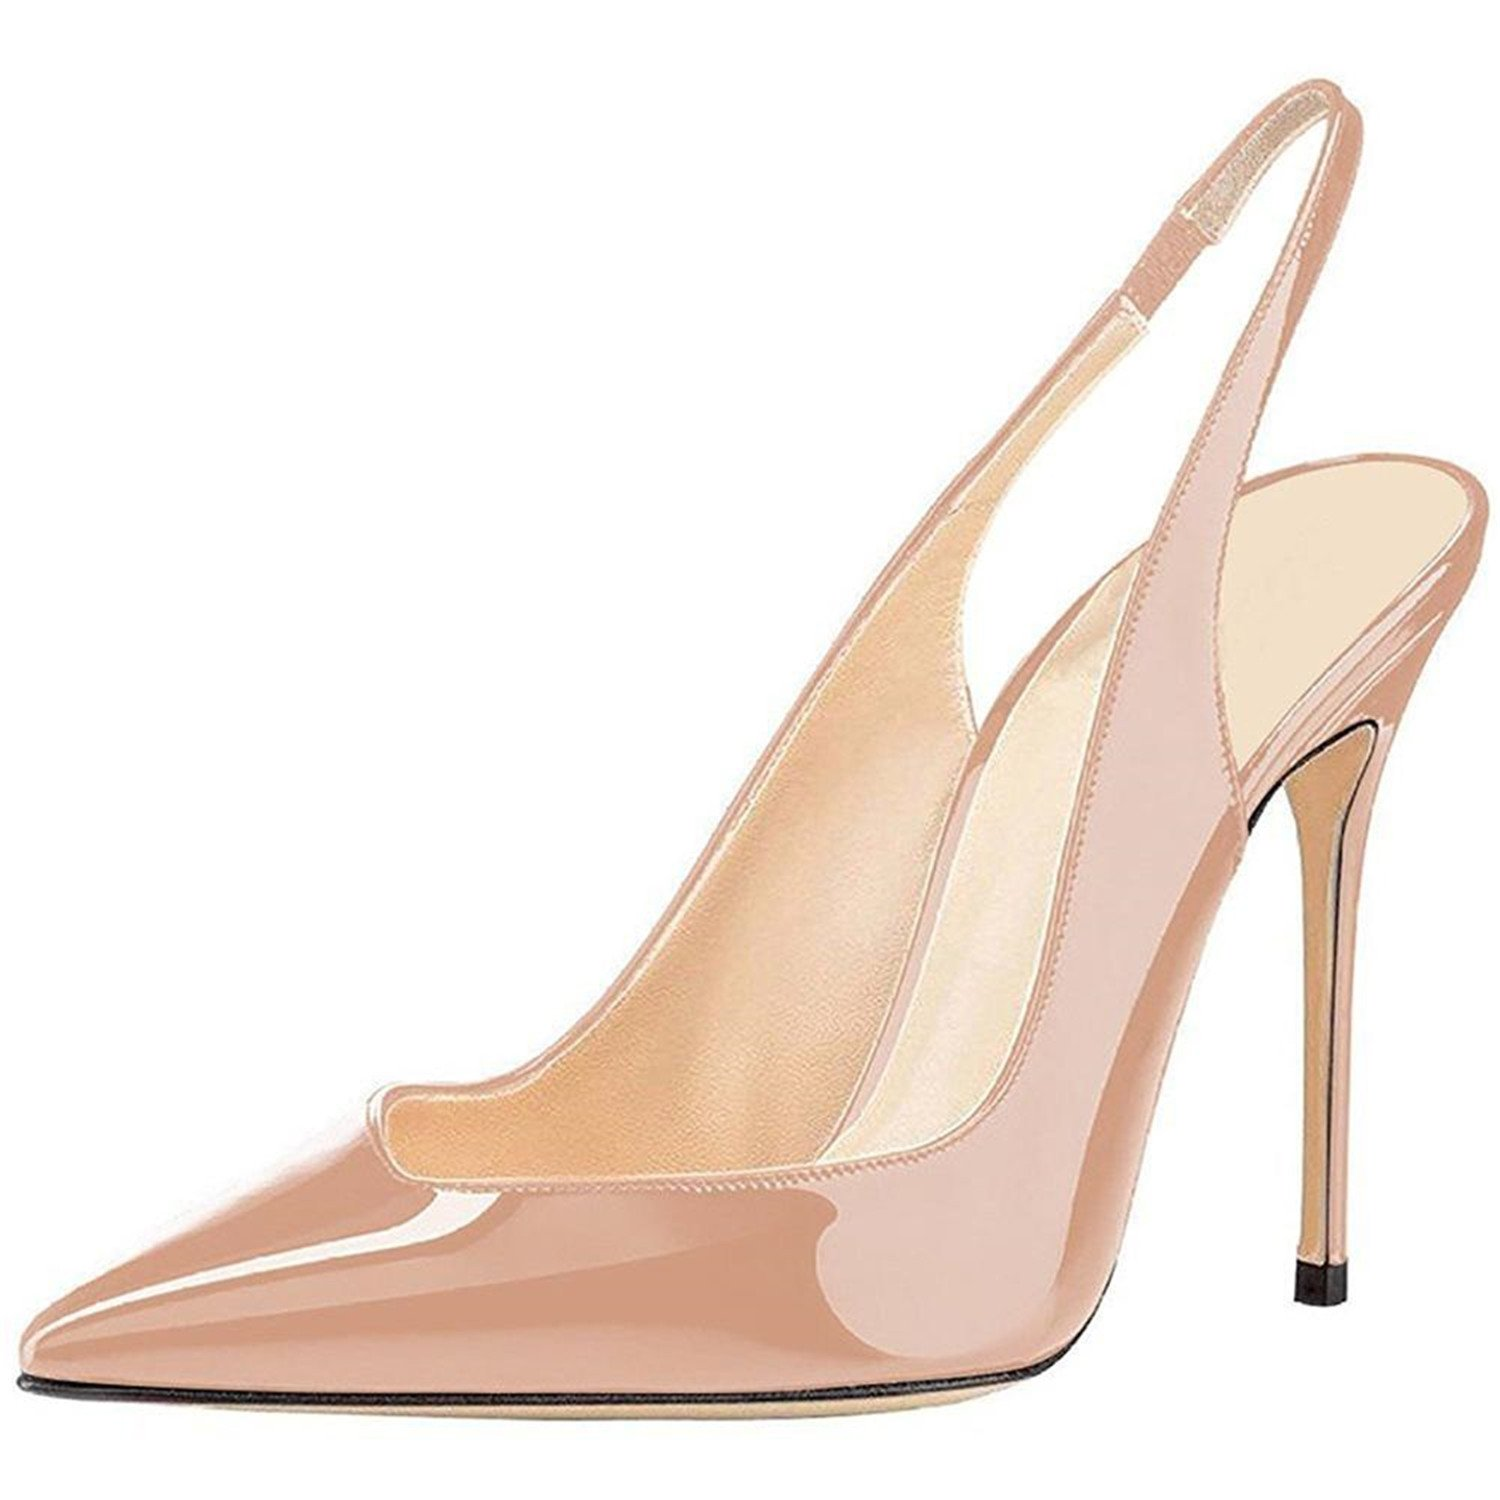 e5537d53 Amazon.com | Gome-z Sexy Pointy Toe Stiletto High Heels Patent Ankle Strap  Wedding Shoes Slingback Heeled Women Pumps US Size 5-15 Nude 5 | Pumps